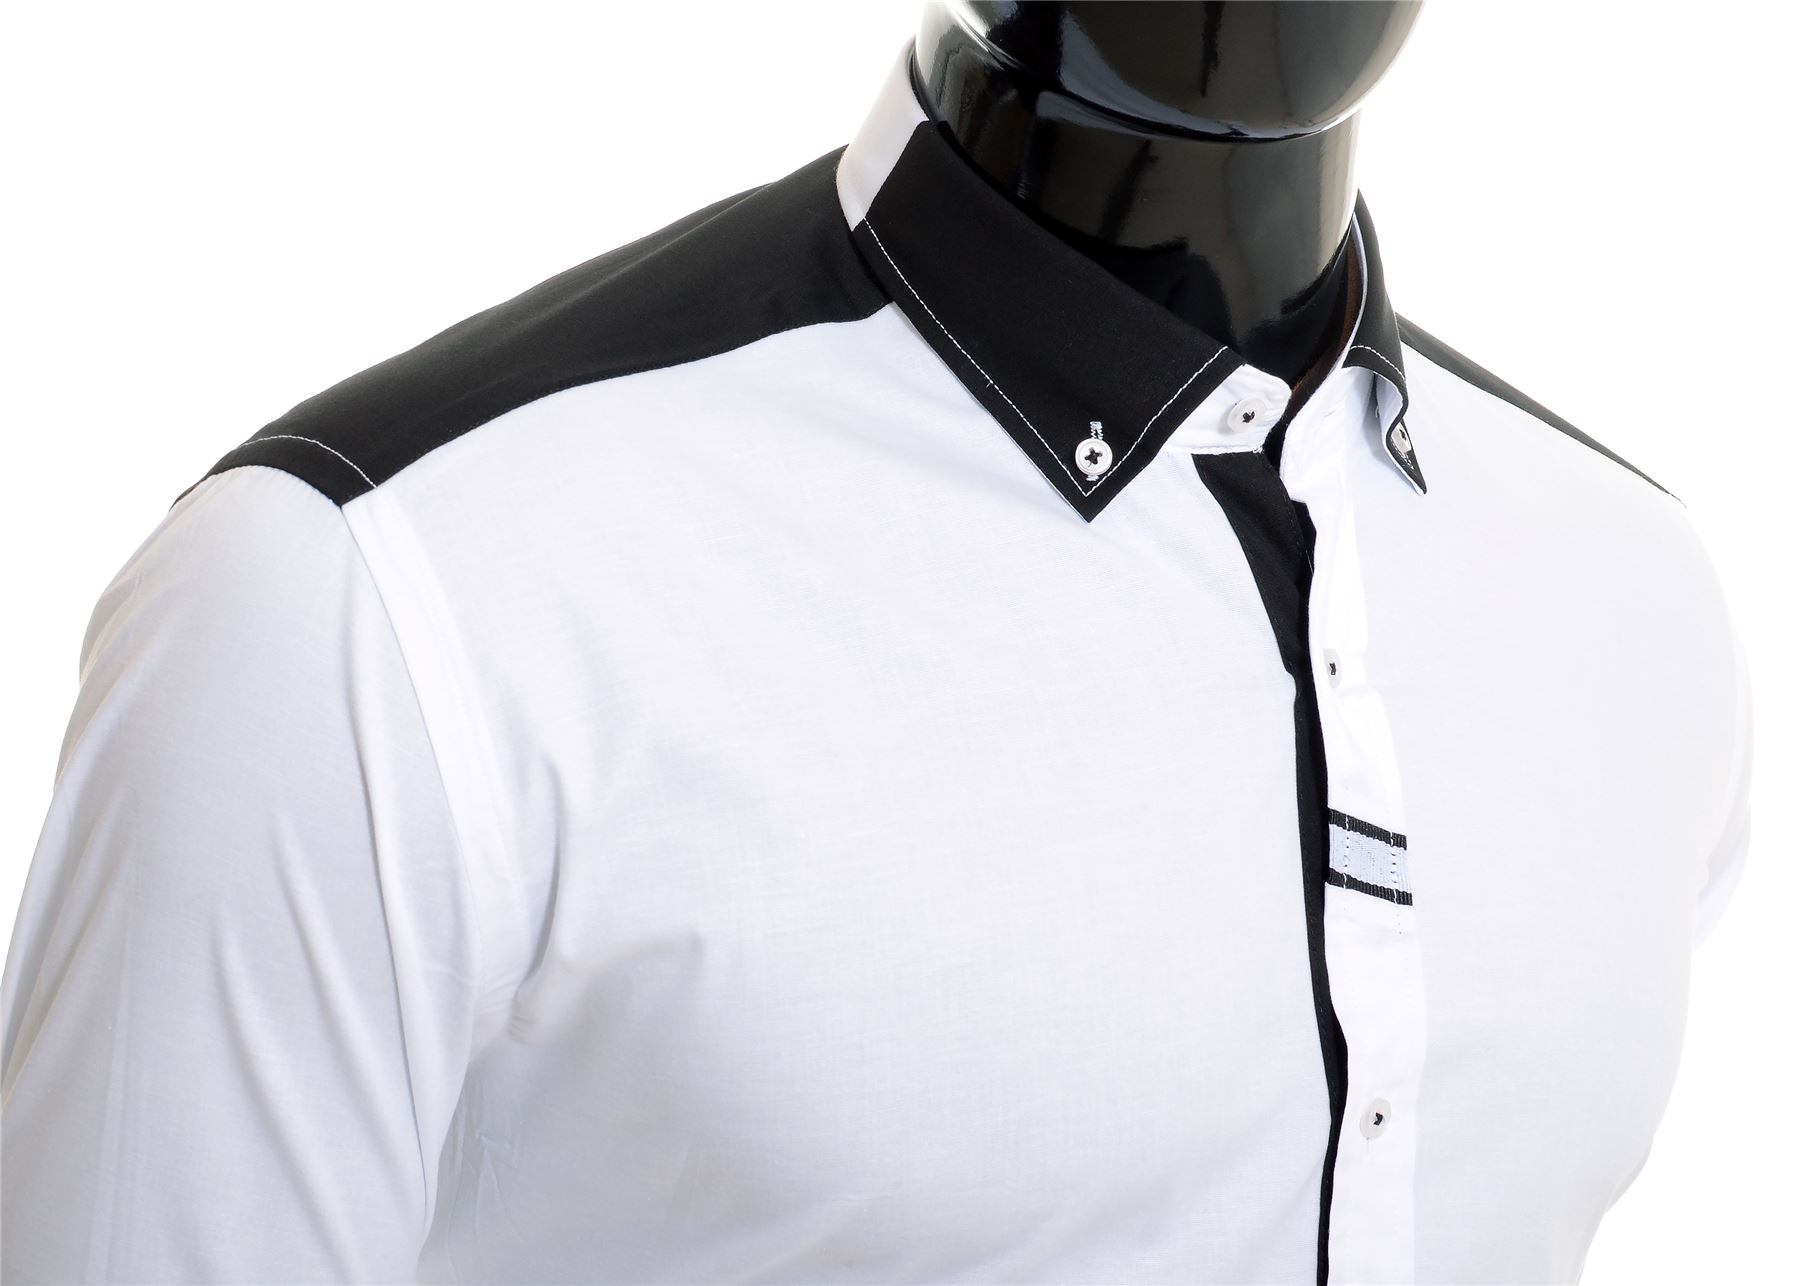 Cipo-amp-Baxx-Designer-Men-039-s-Elegant-Shirt-White-Black-Cotton-Slim-Contrast-Cuffs thumbnail 13